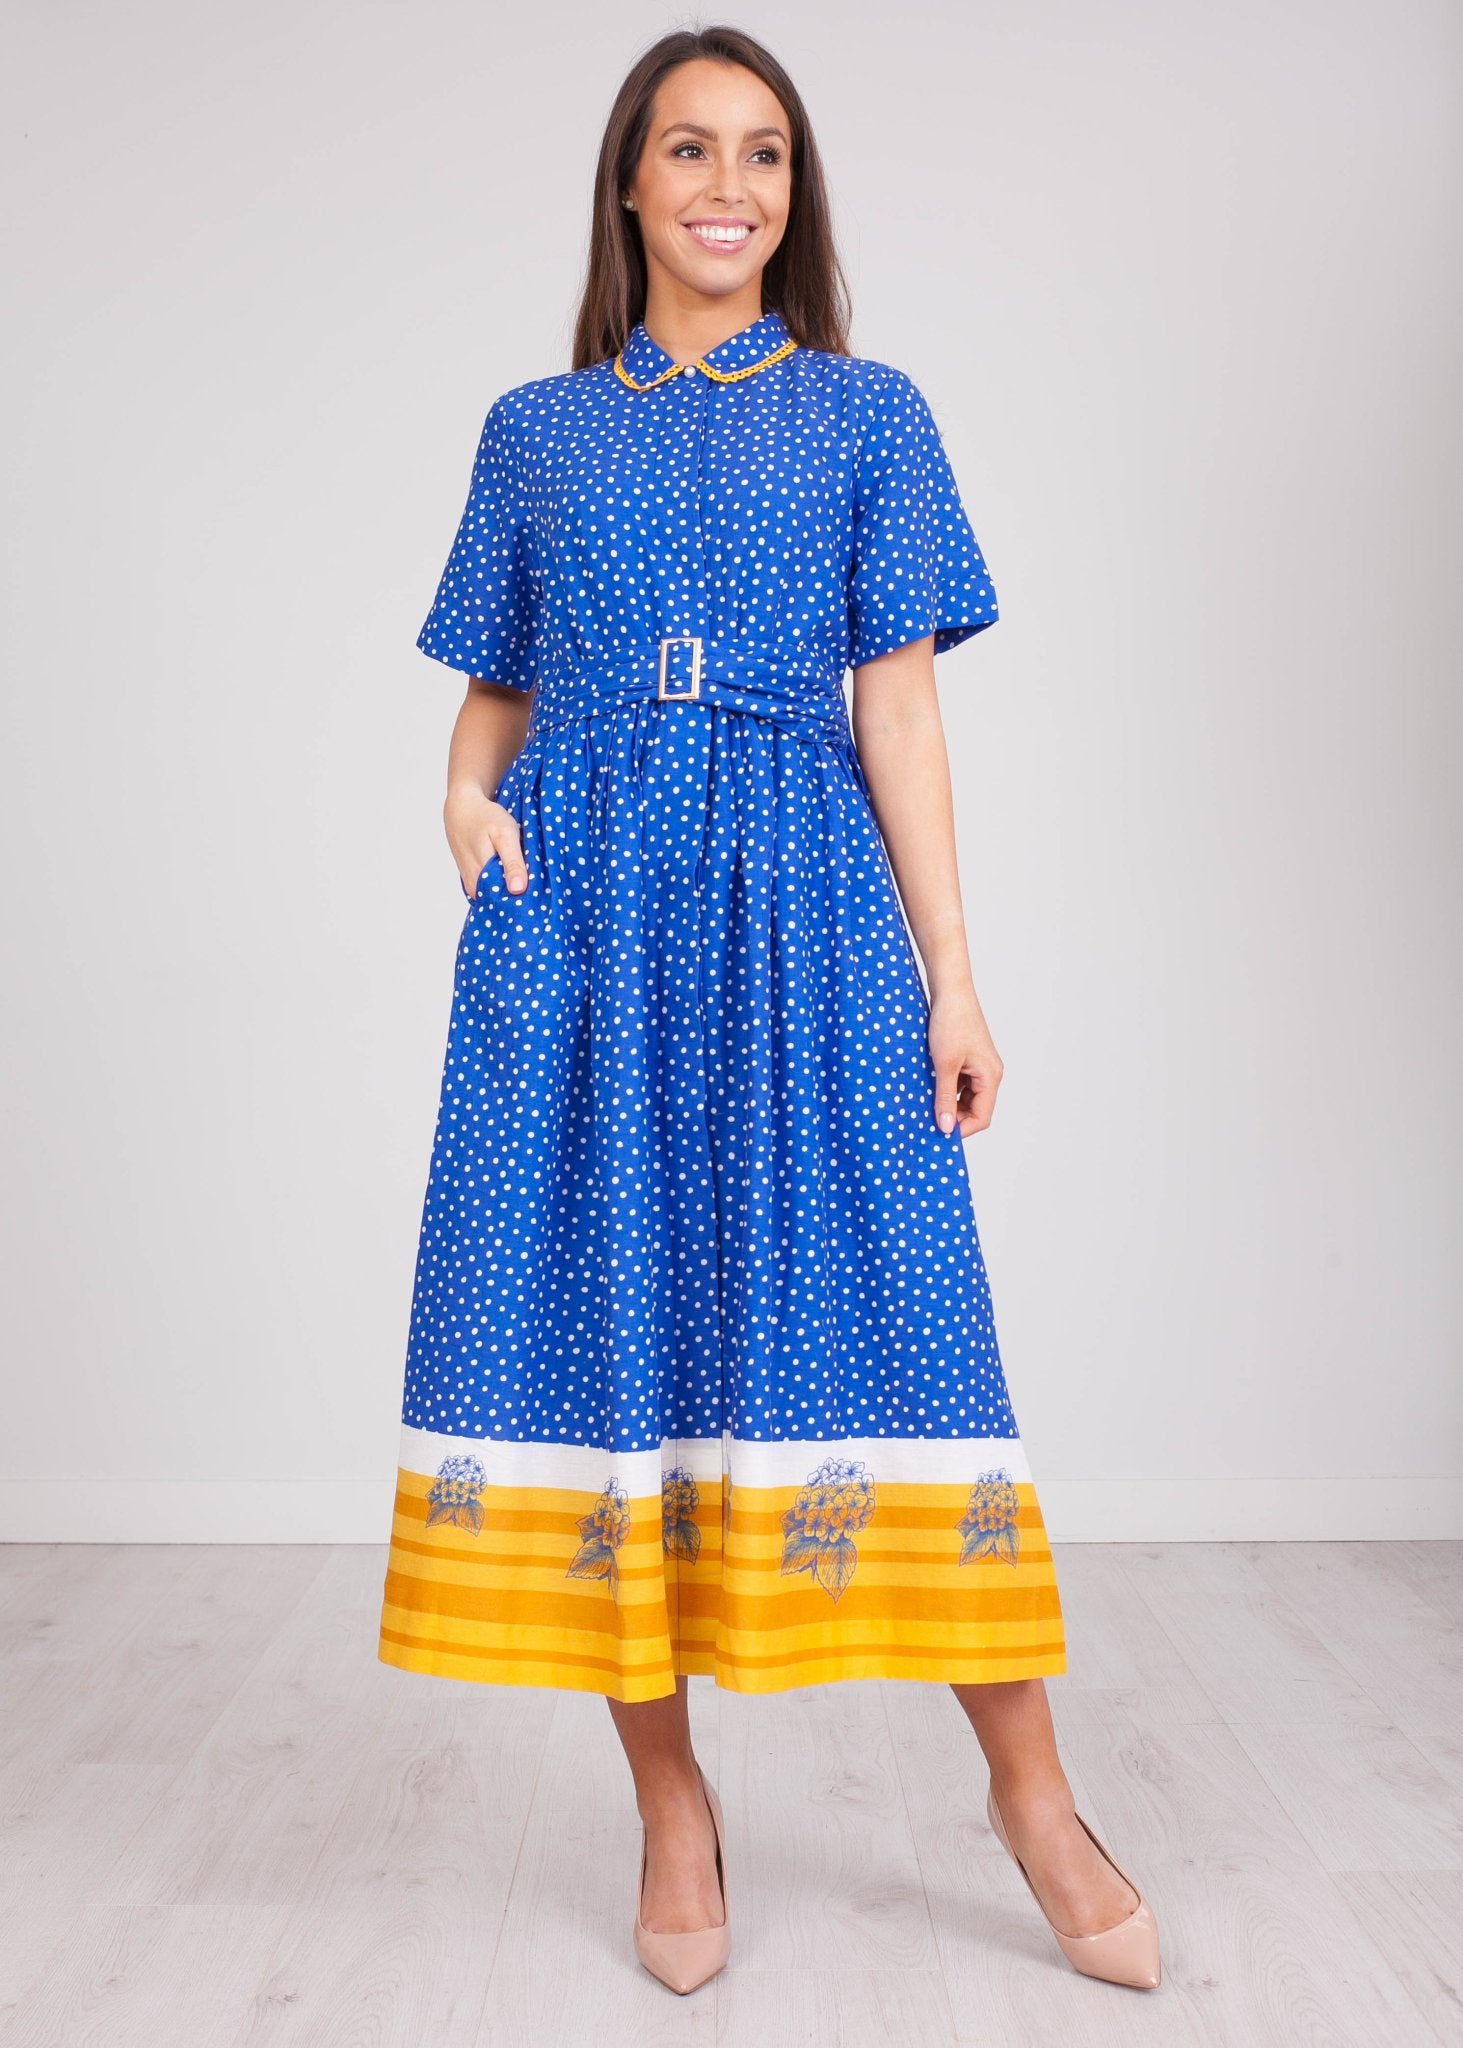 Emily Blue Polkadot Dress - The Walk in Wardrobe